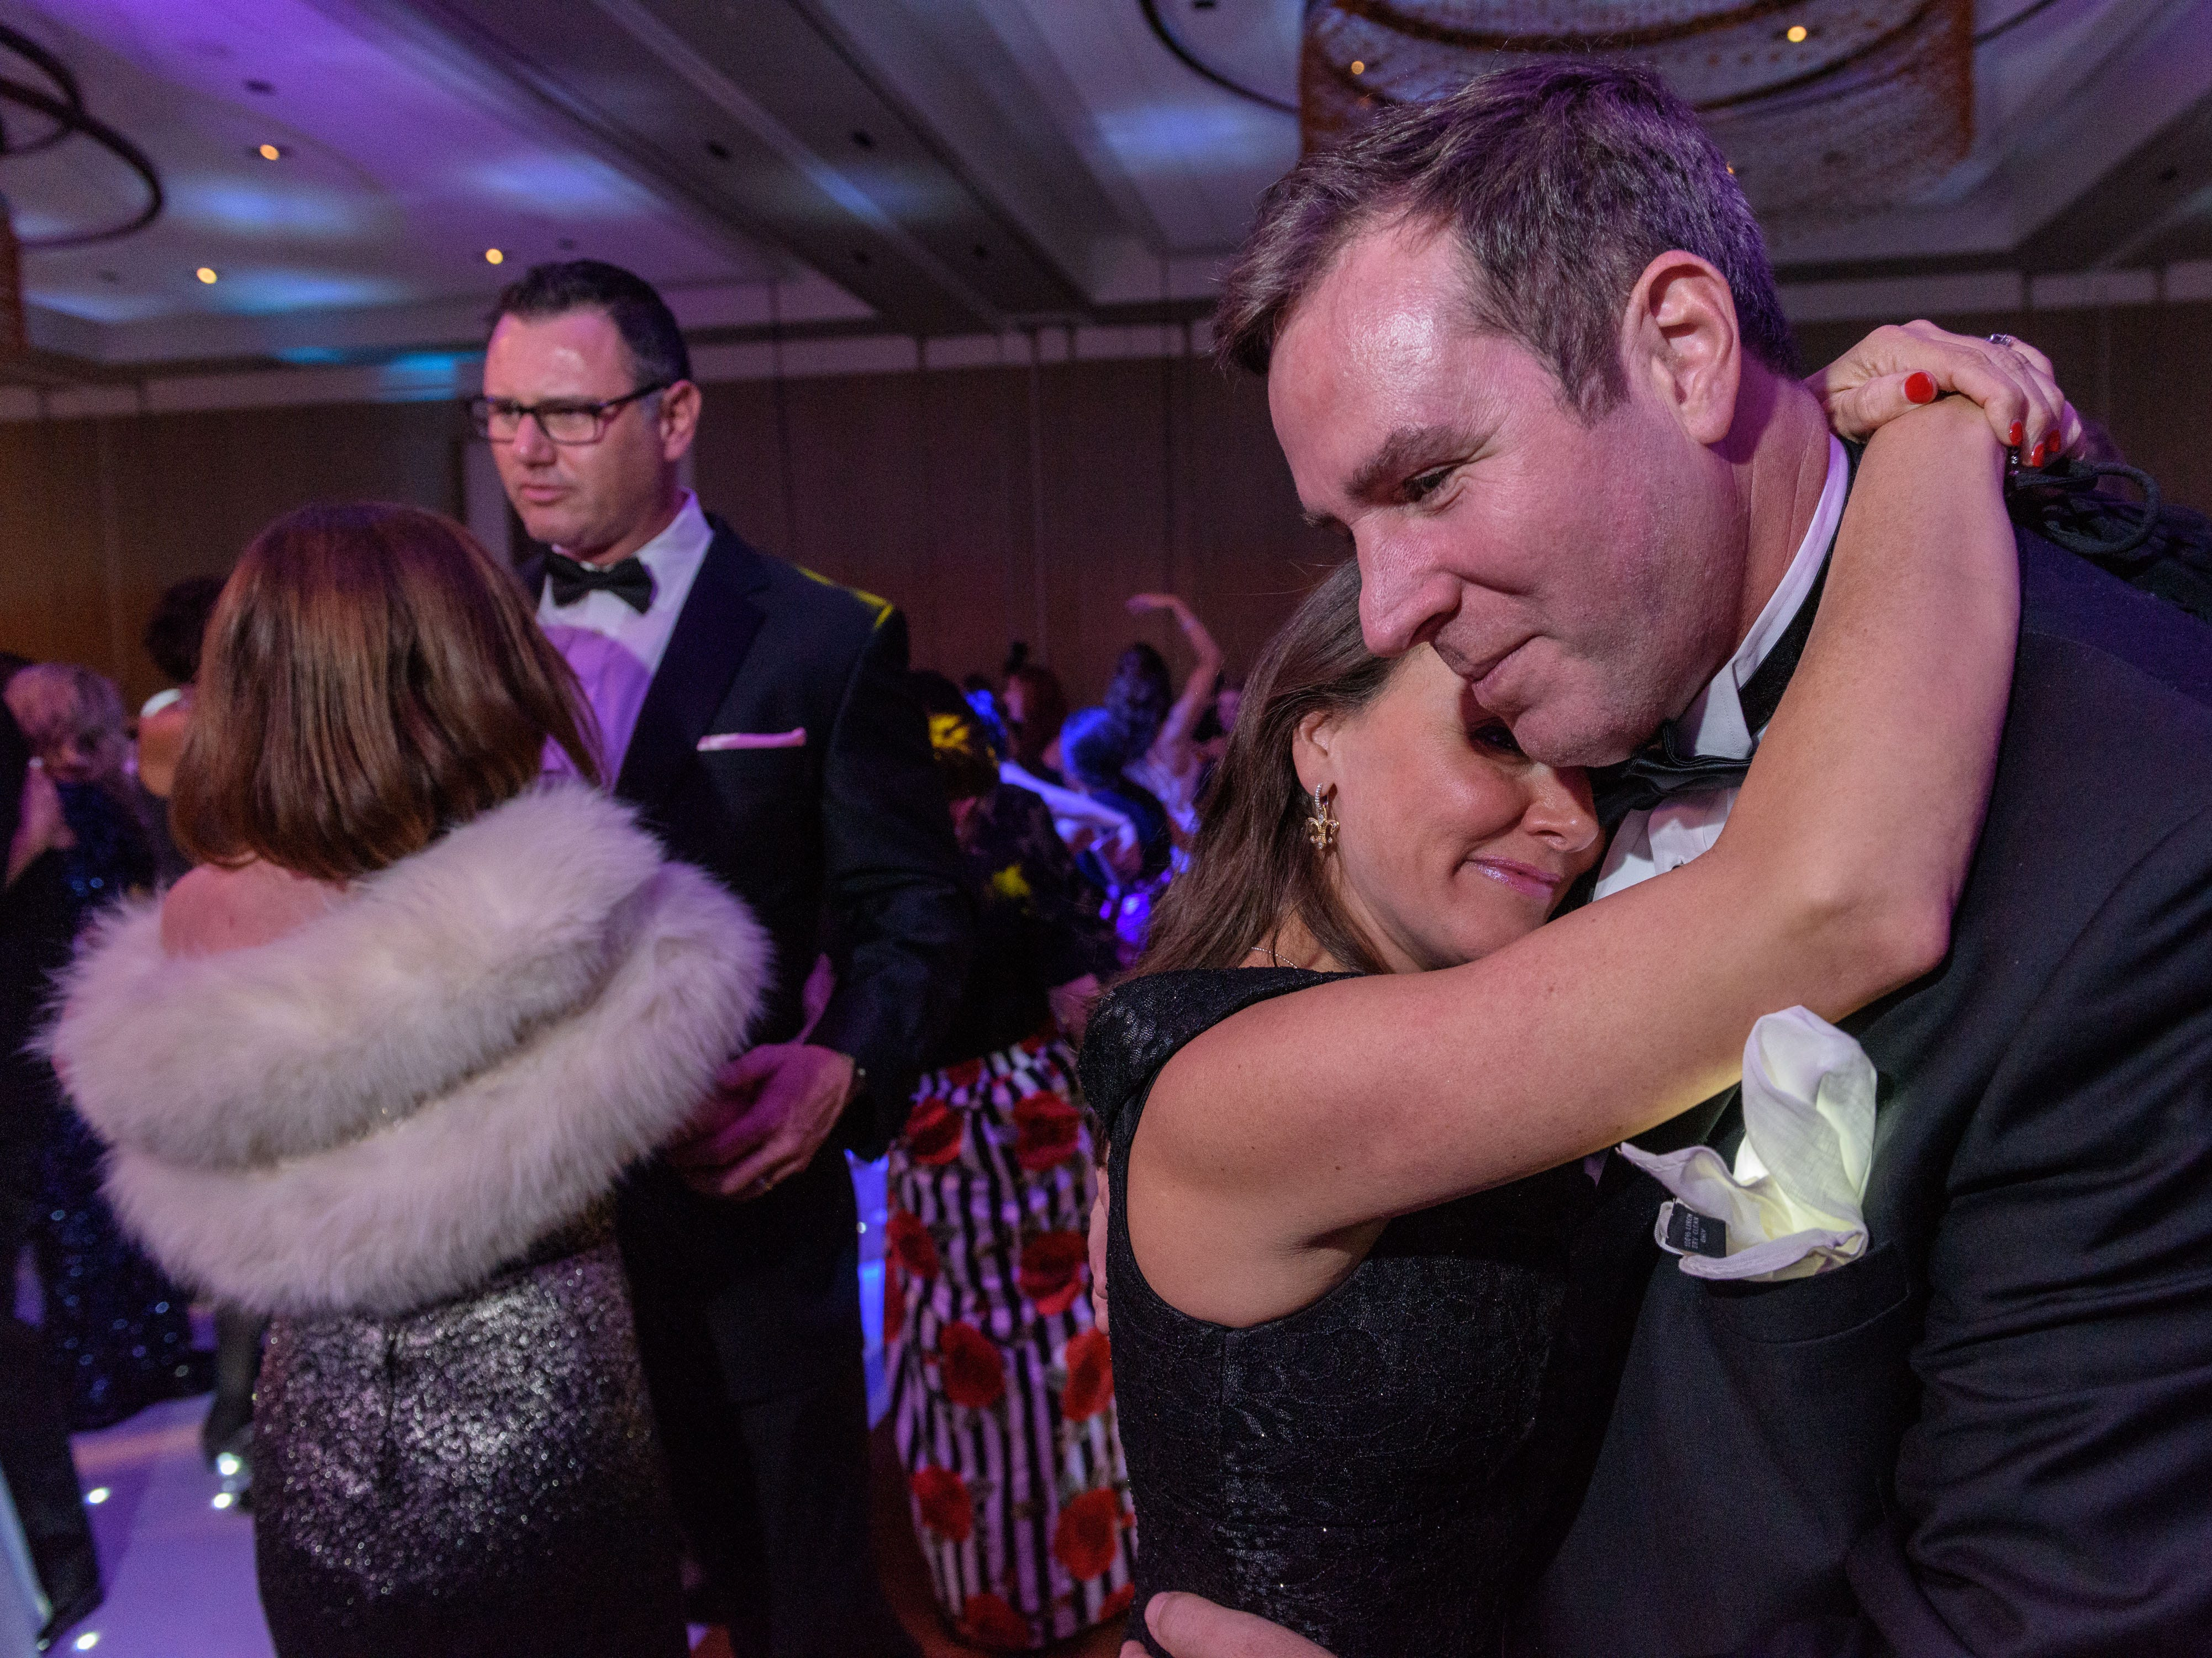 """A couple dances to The Bee Gee's """"How deep is your love"""" at the Snow Ball Gala at the Omni Hotel, a benefit for the Jennifer Lawrence Cardiac Intensive Care Unit (CICU) at Norton ChildrenÕs Hospital. Nov. 17, 2018"""